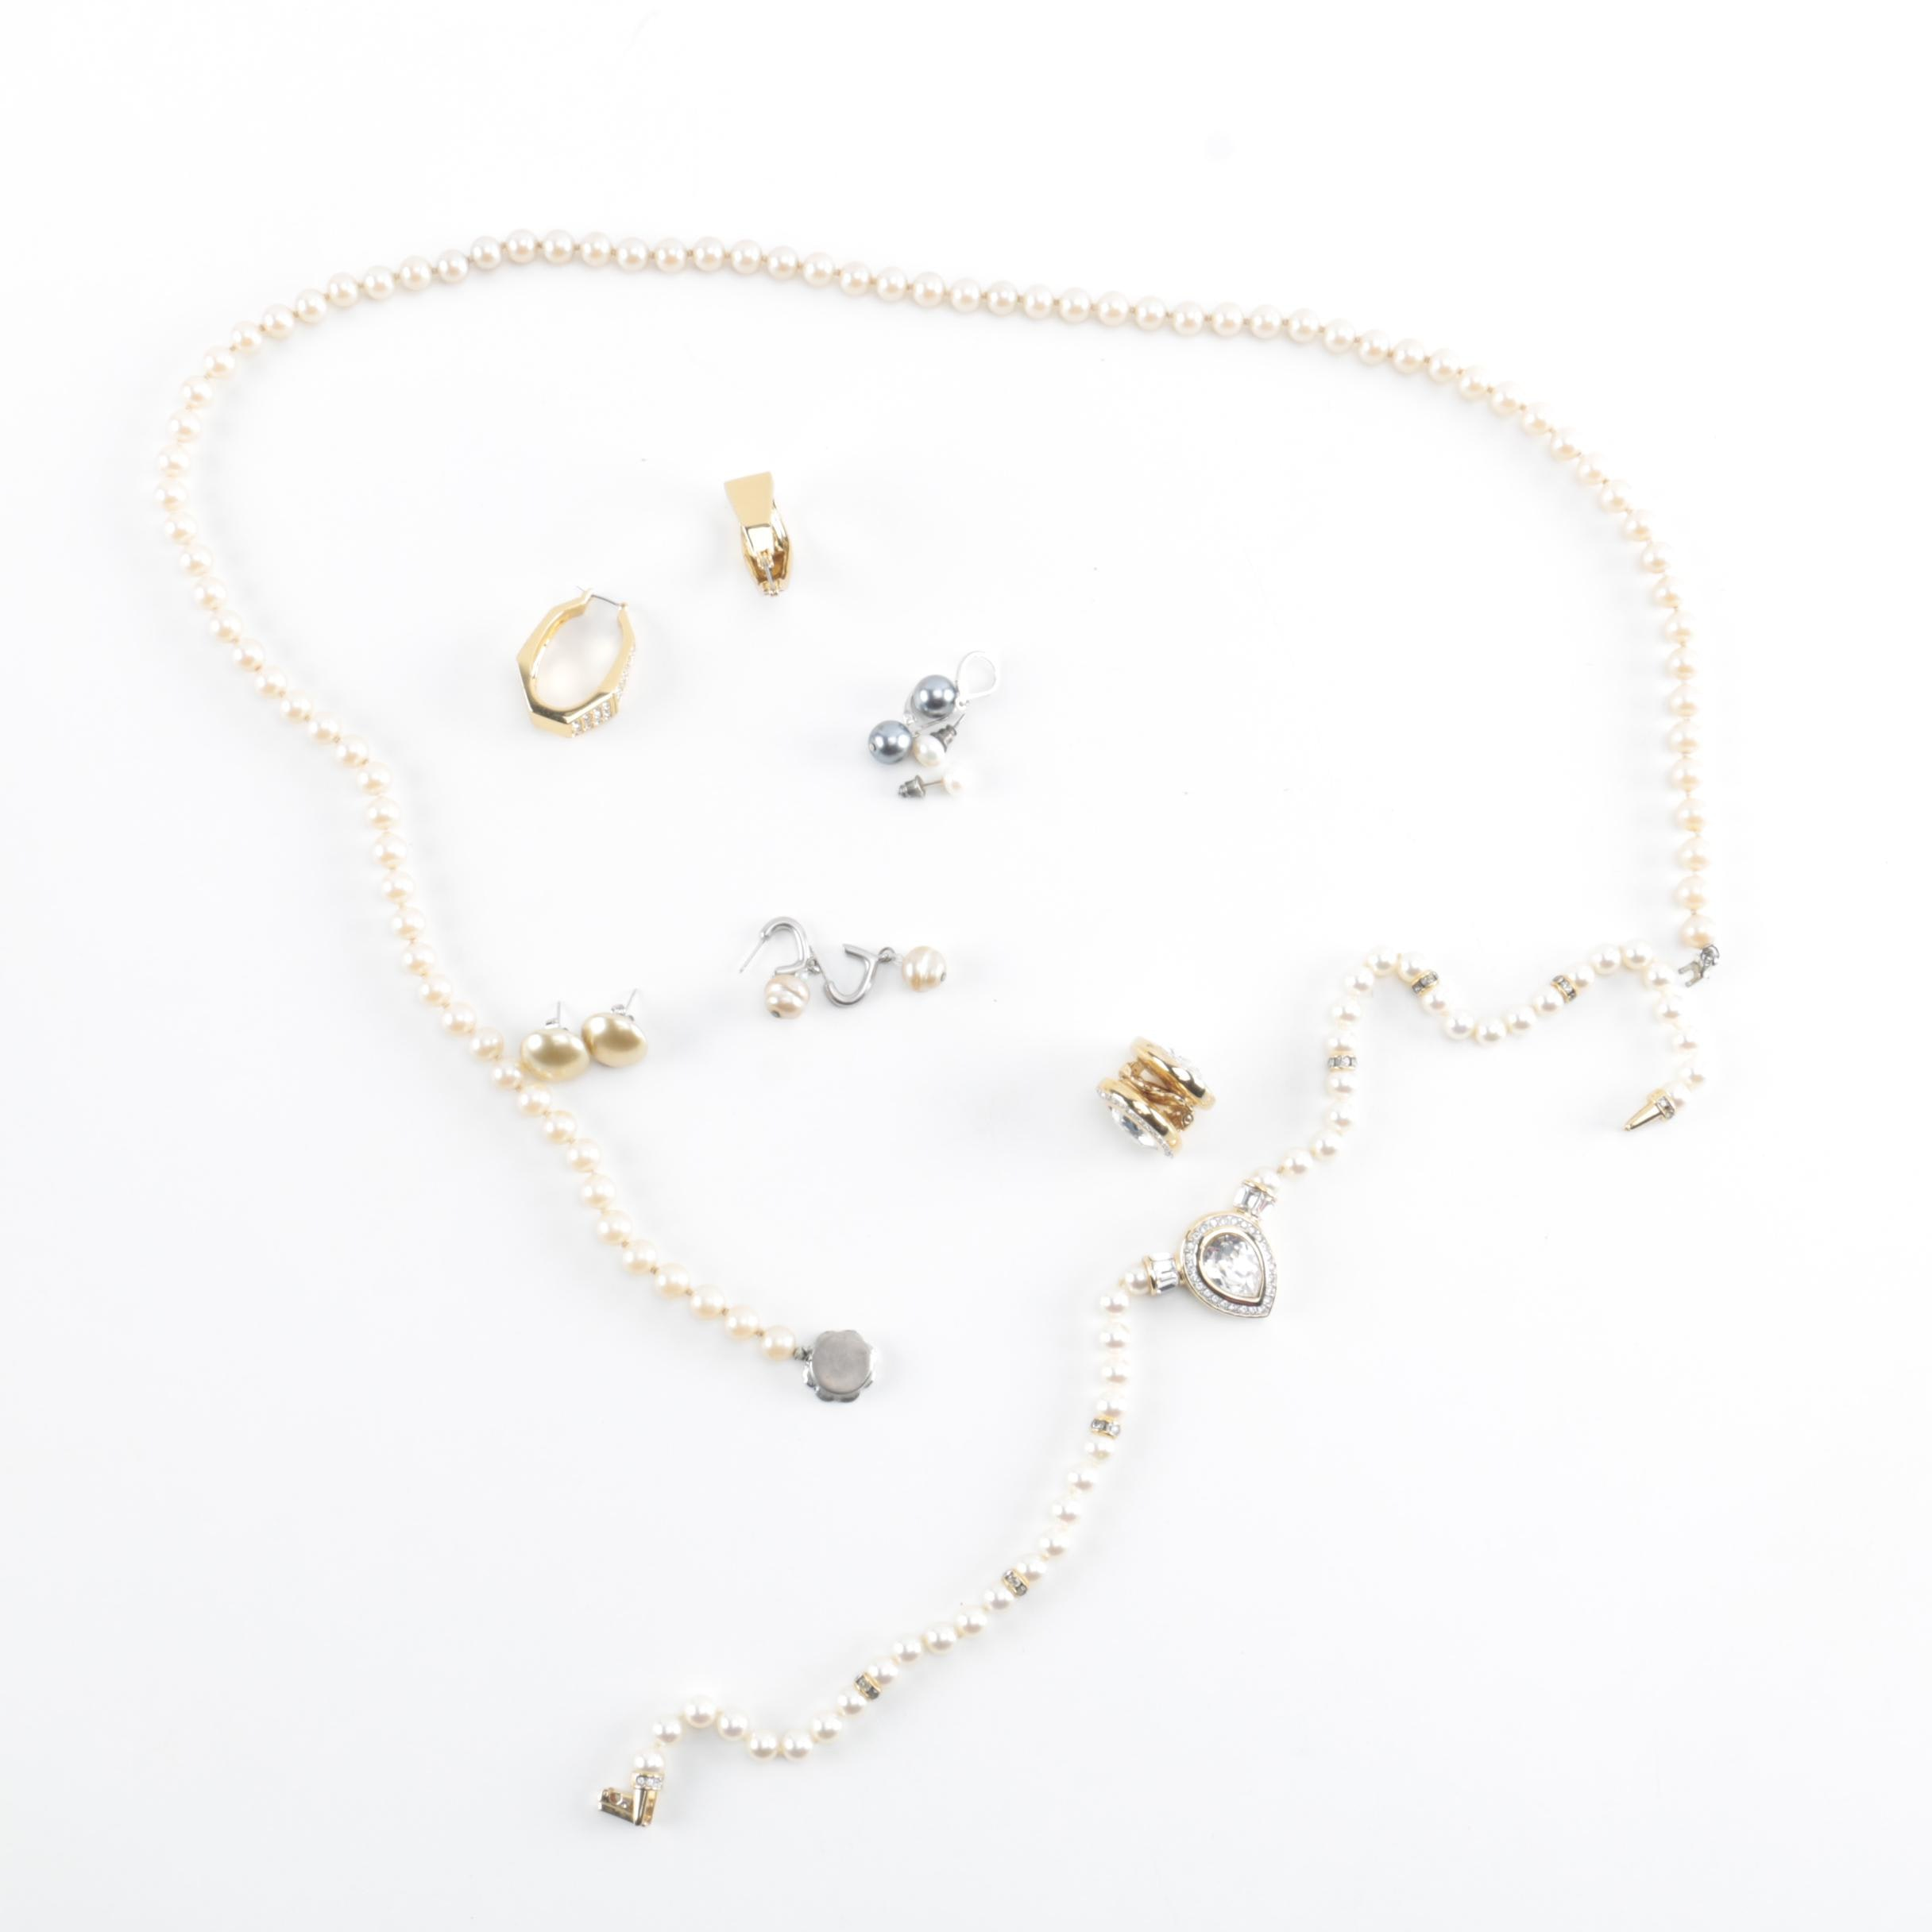 Costume Jewelry Including Faux Pearls, Cultured Pearls, and Rhinestone Accents